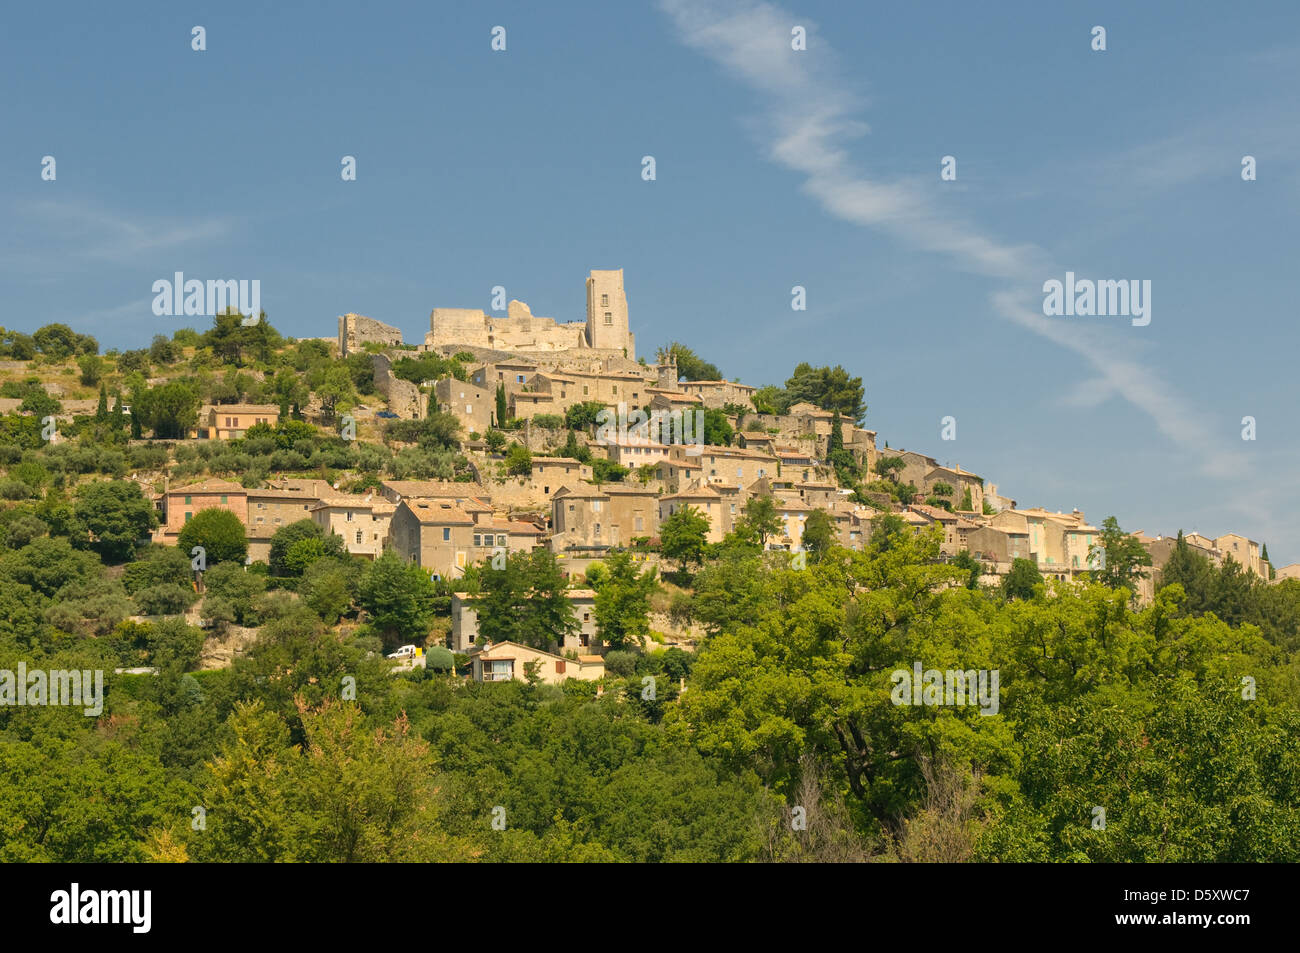 Provencal village of Lacoste - Stock Image